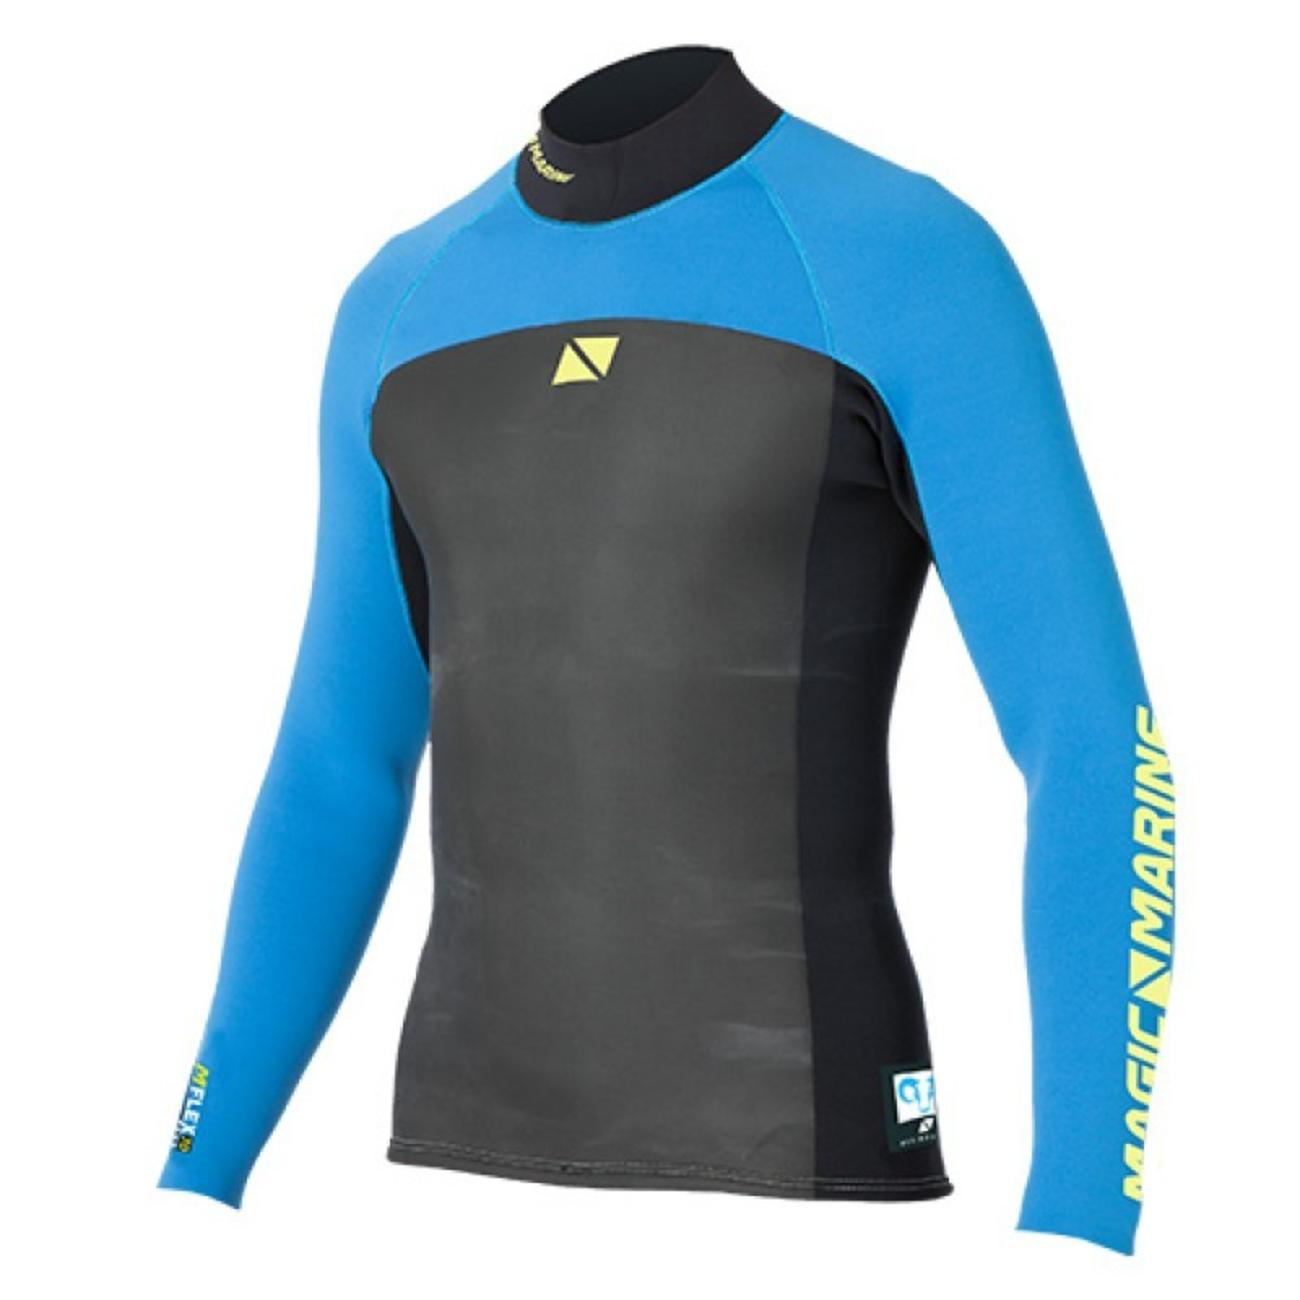 Ultimate Vest L/S Neoprene 3mm Flatlock